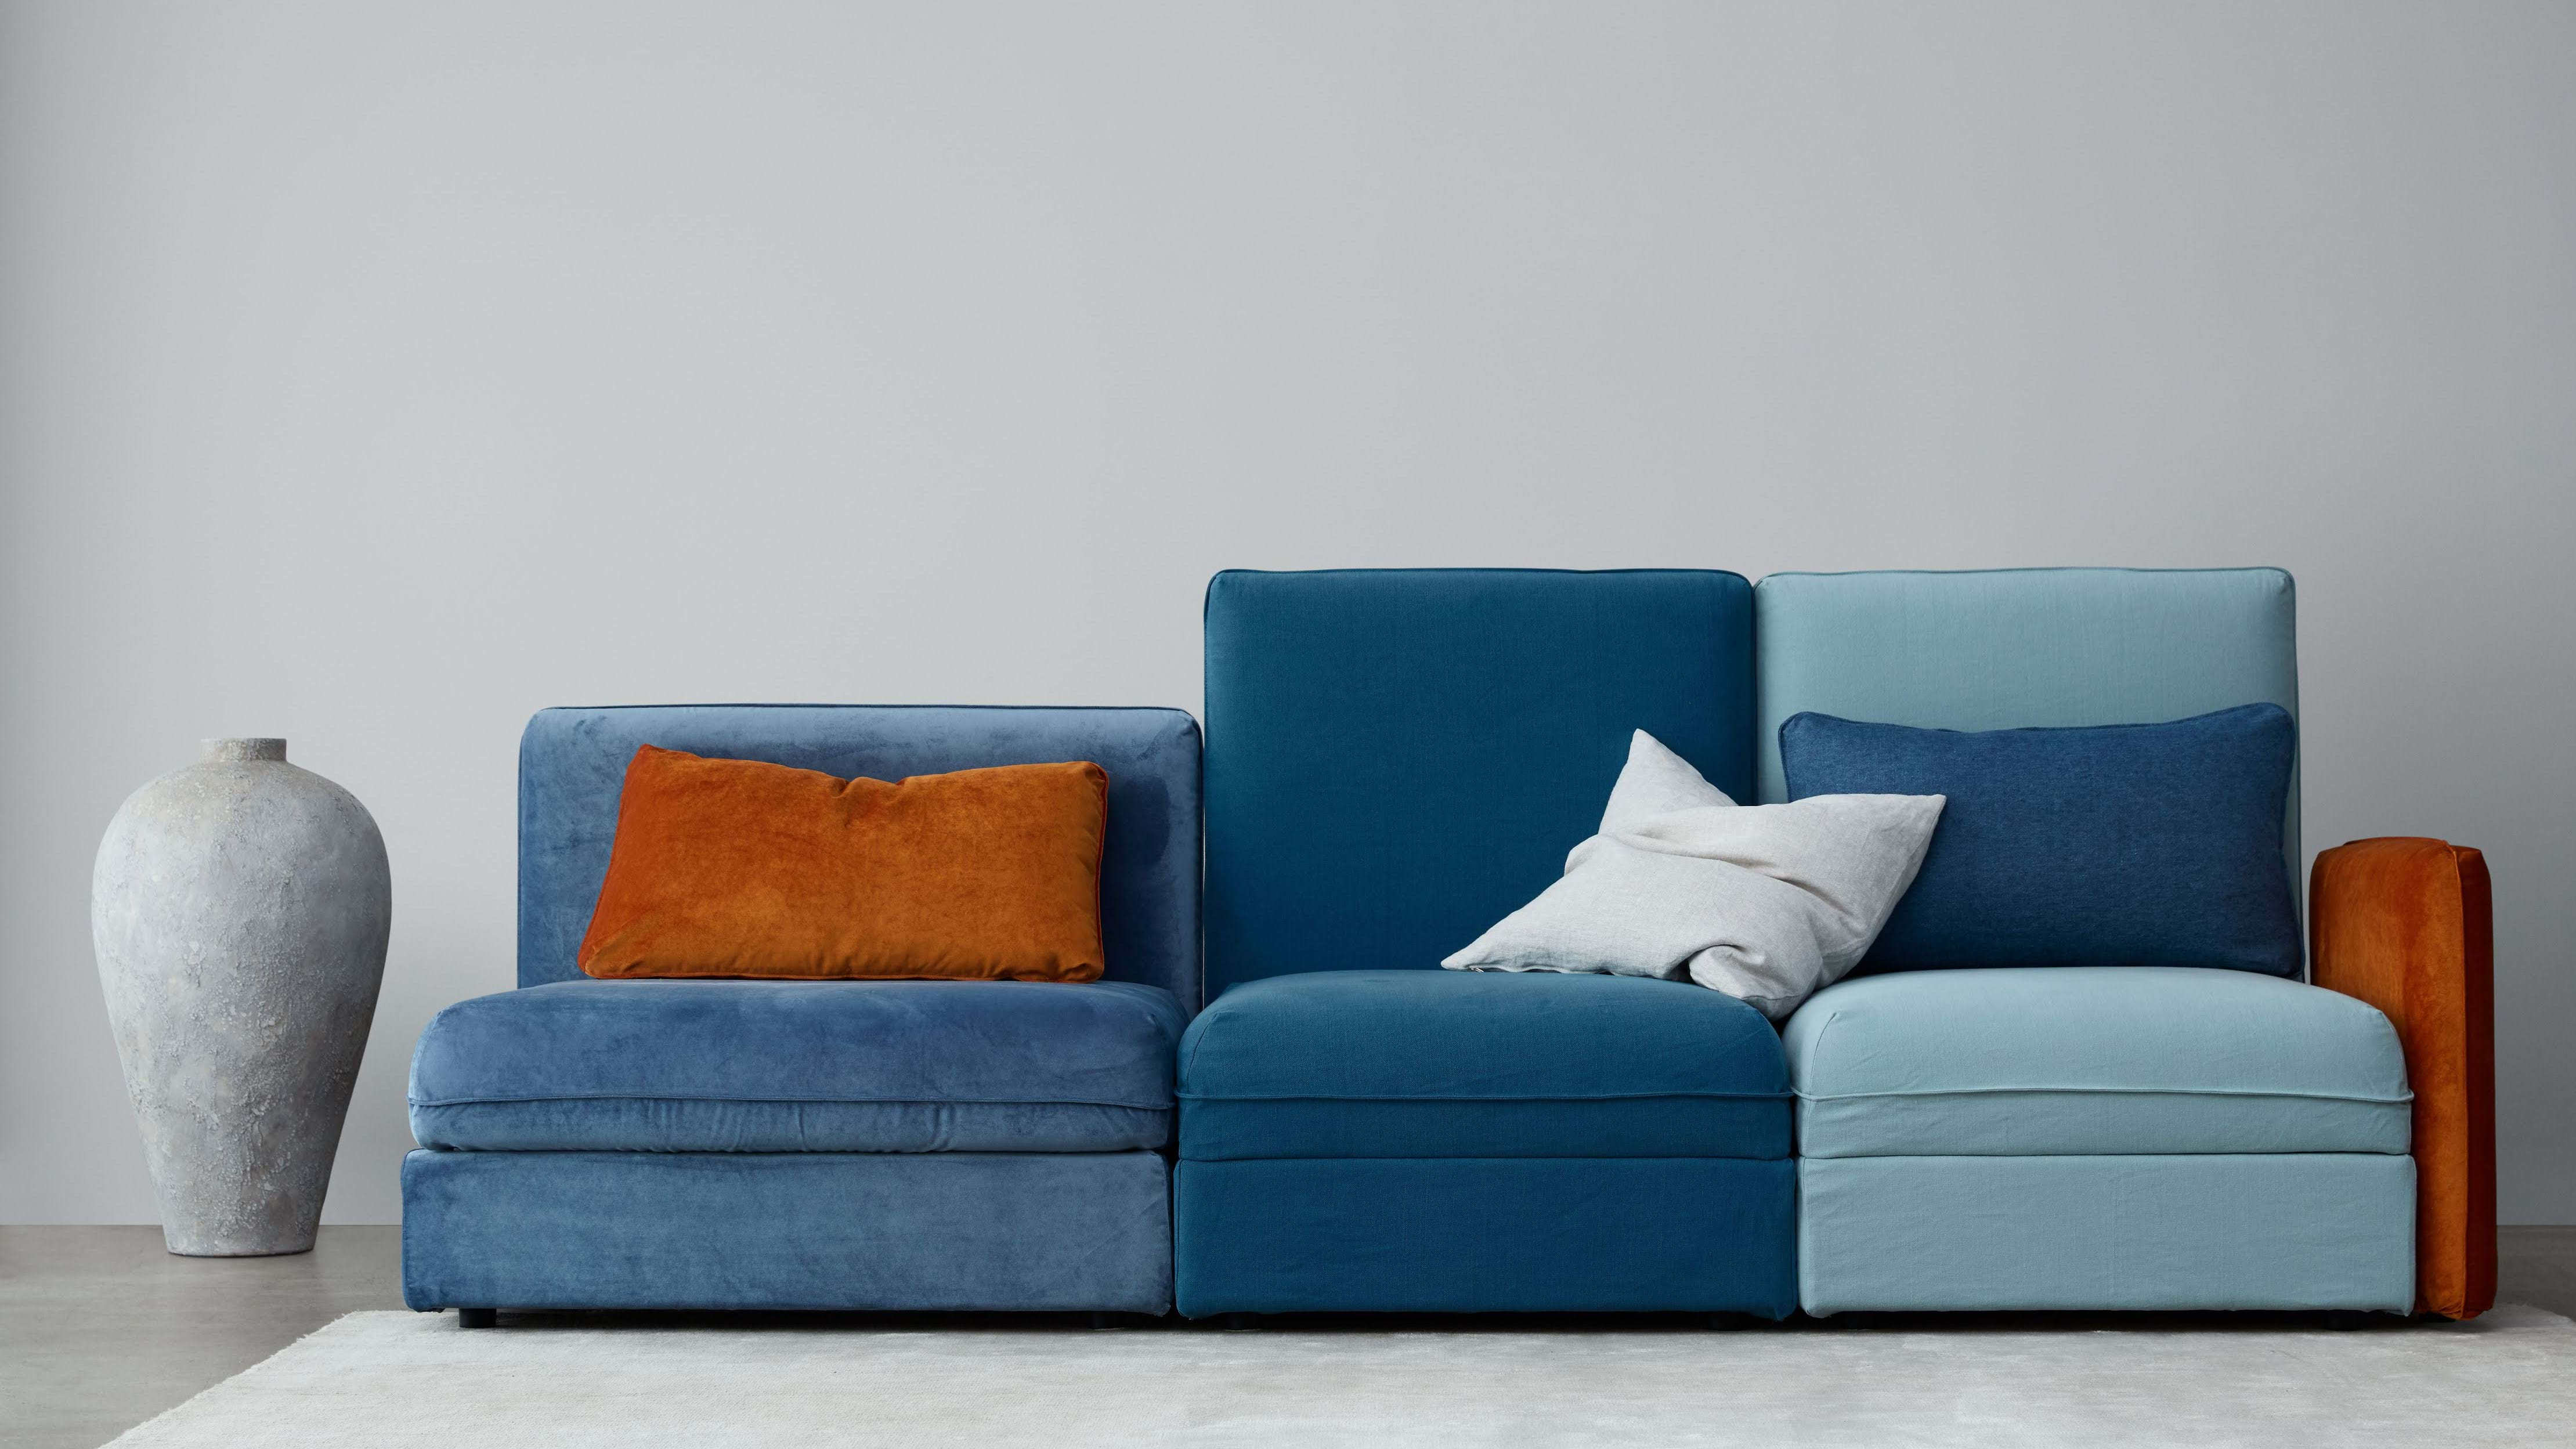 Ikea Vallentuna Sofa Review And Why We Love It Bemz